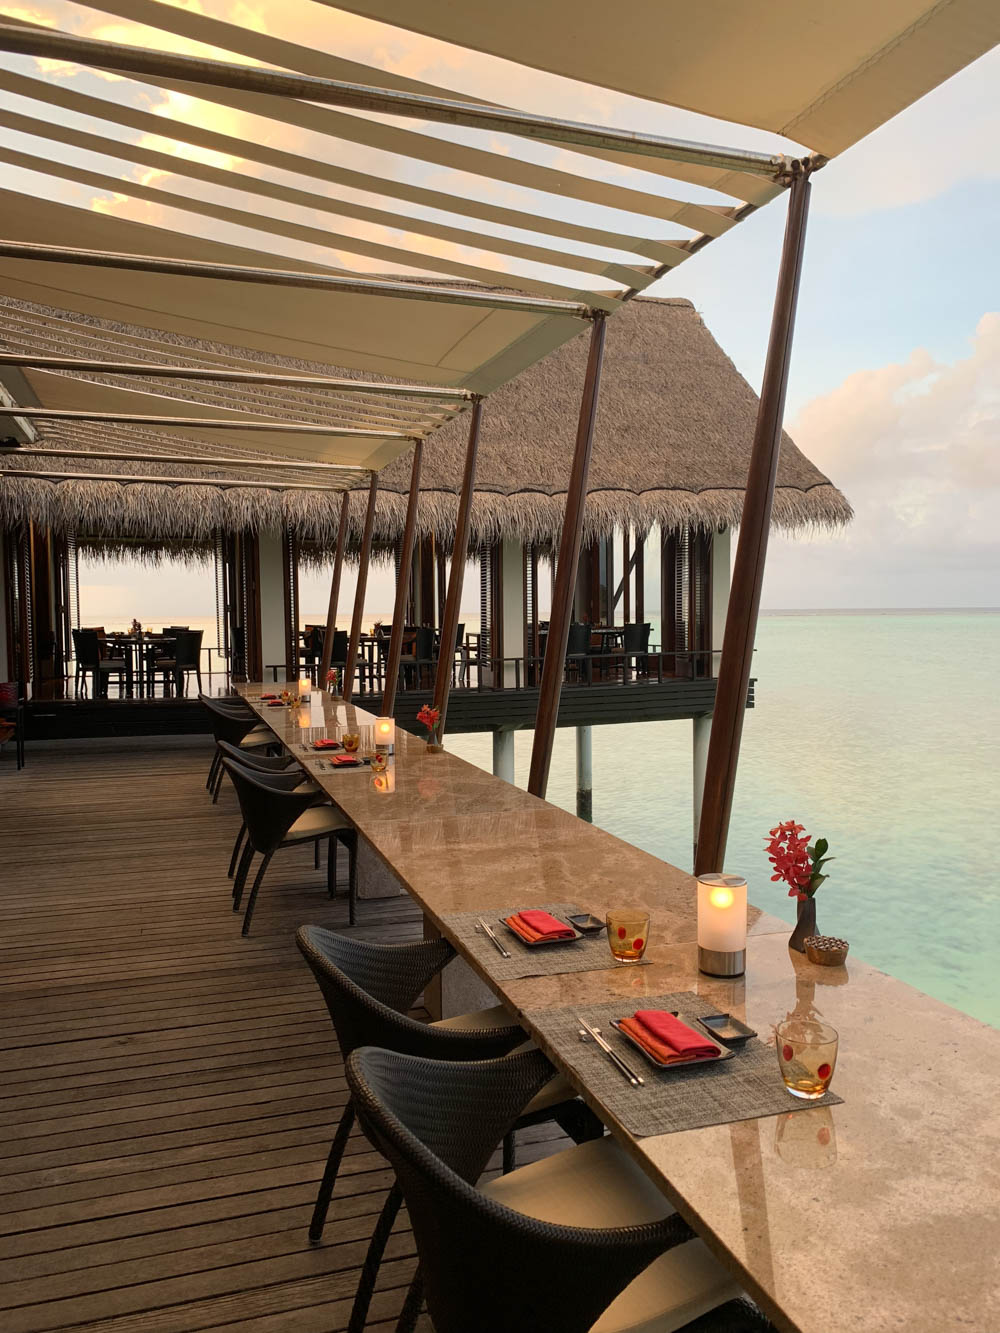 Maldives_Resort_Honeymoon_OneandOnly_MaldivesTravelAdvisor-21.jpg